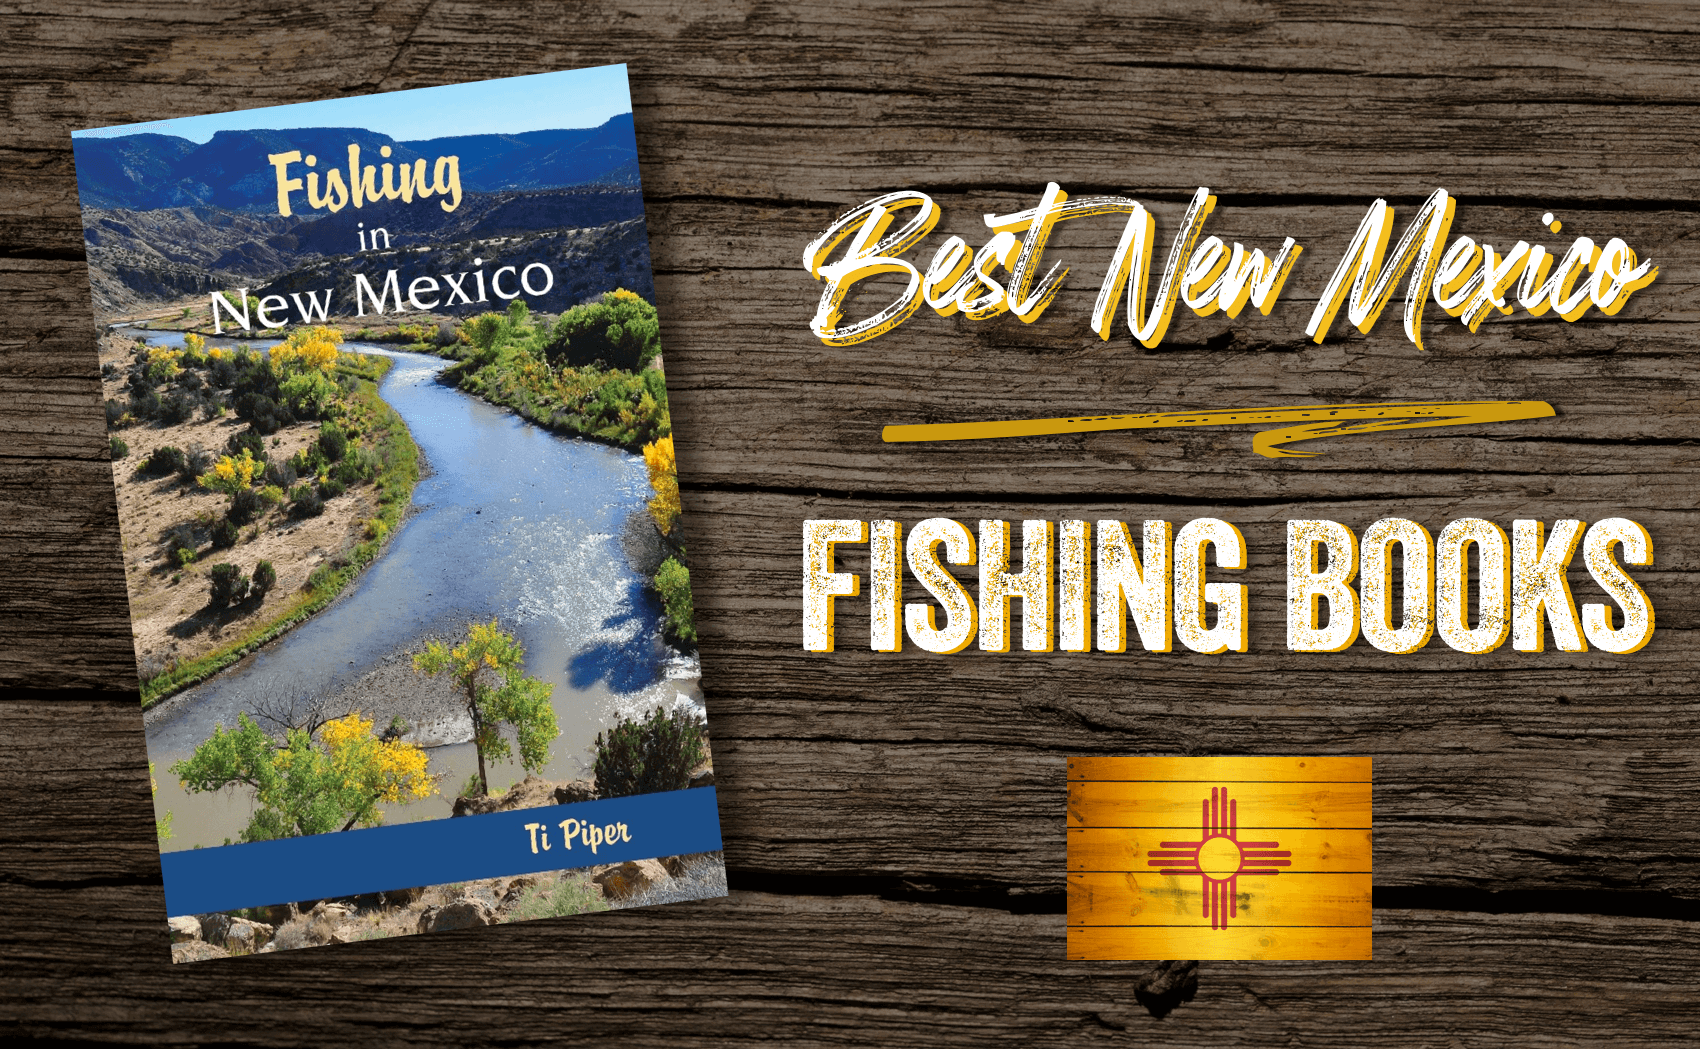 Best-Fishing-Books-Guides-in-New-Mexico